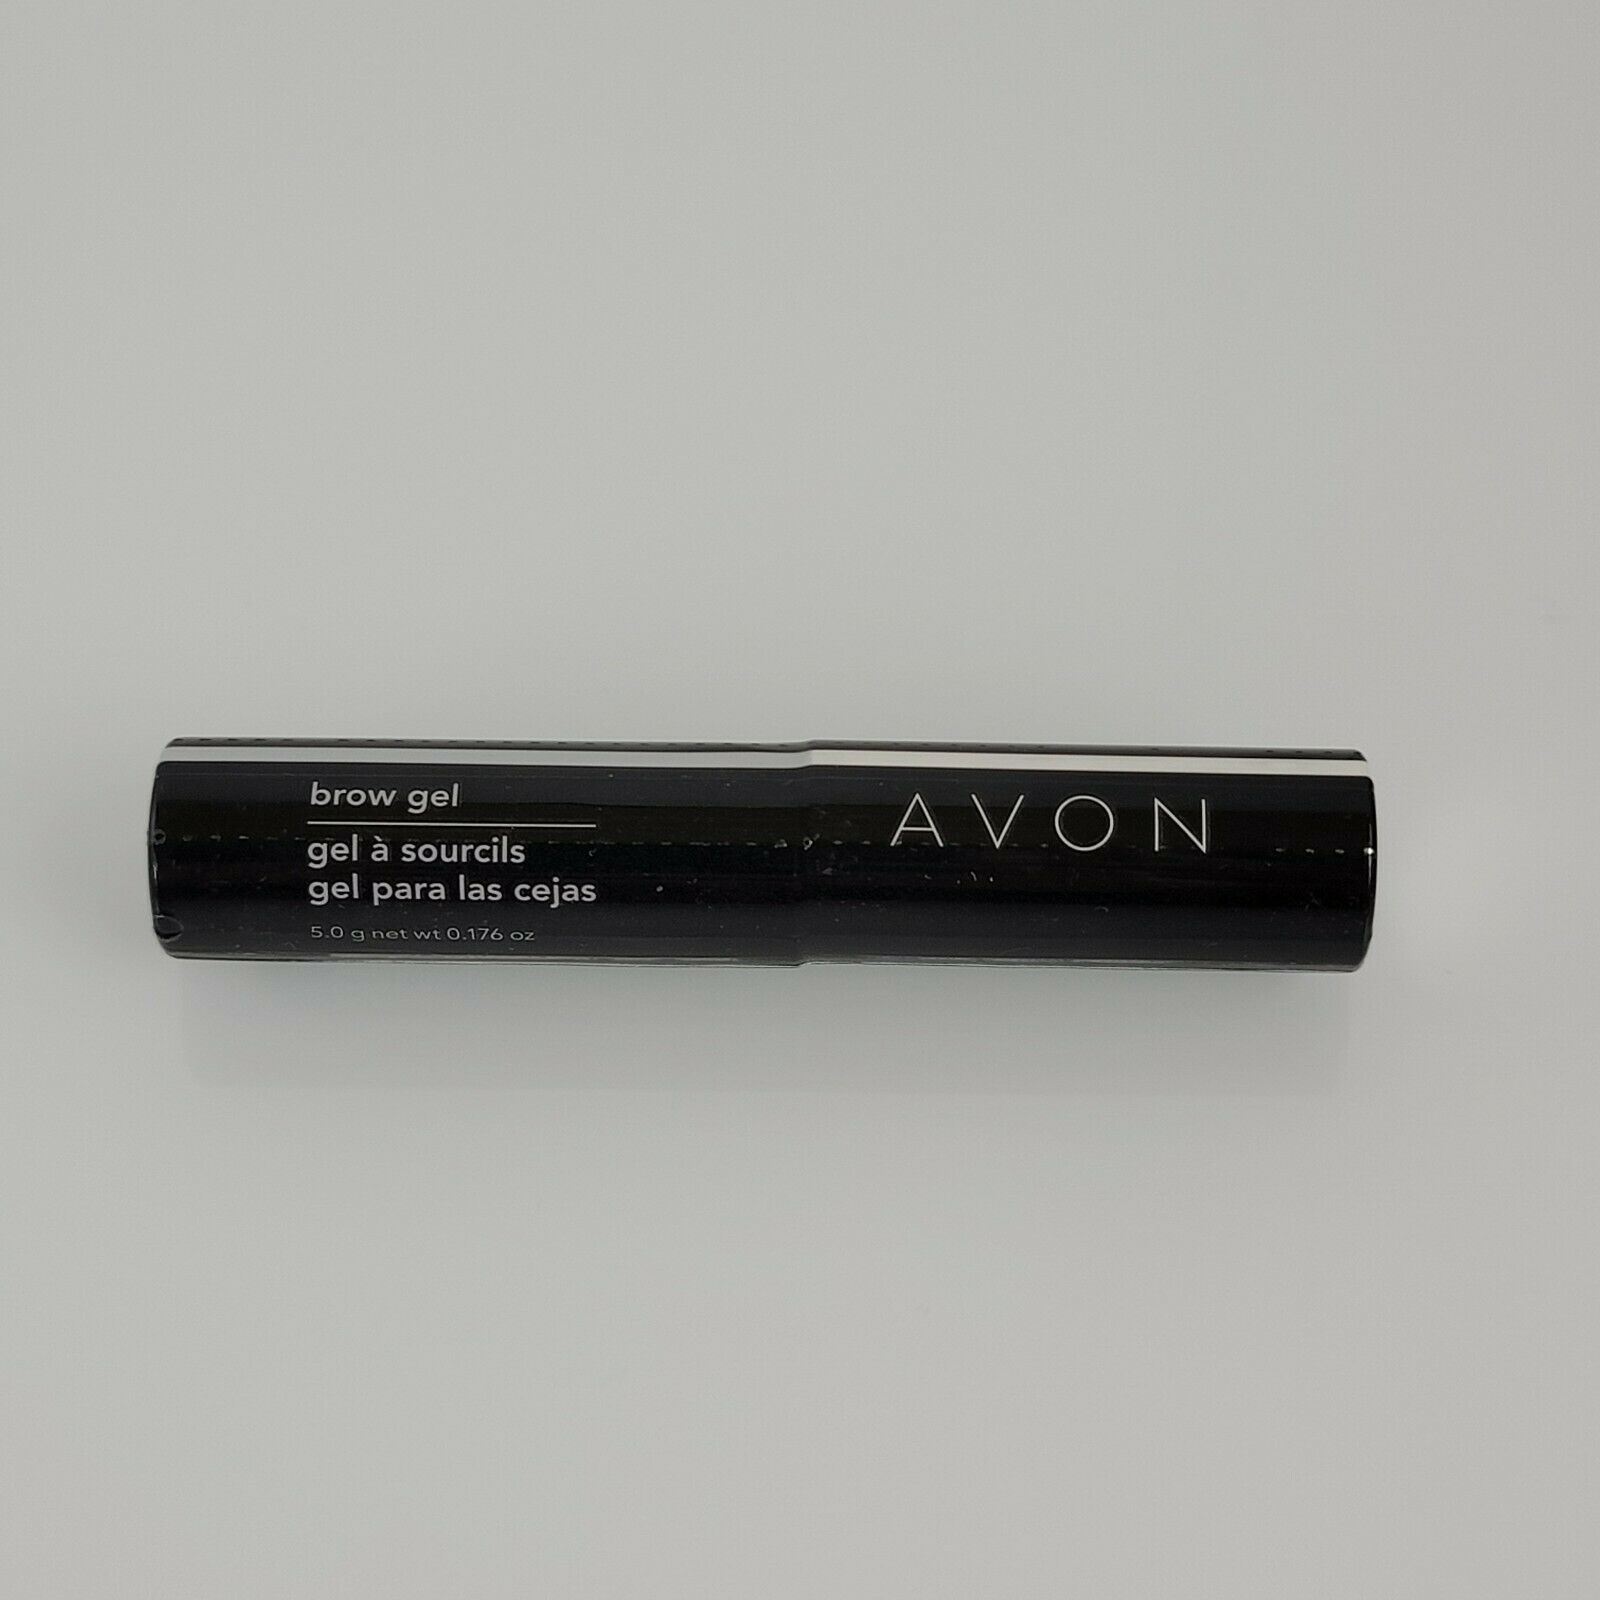 AVON Clear Brow Gel .176 oz NEW 2011 old stock - $12.37